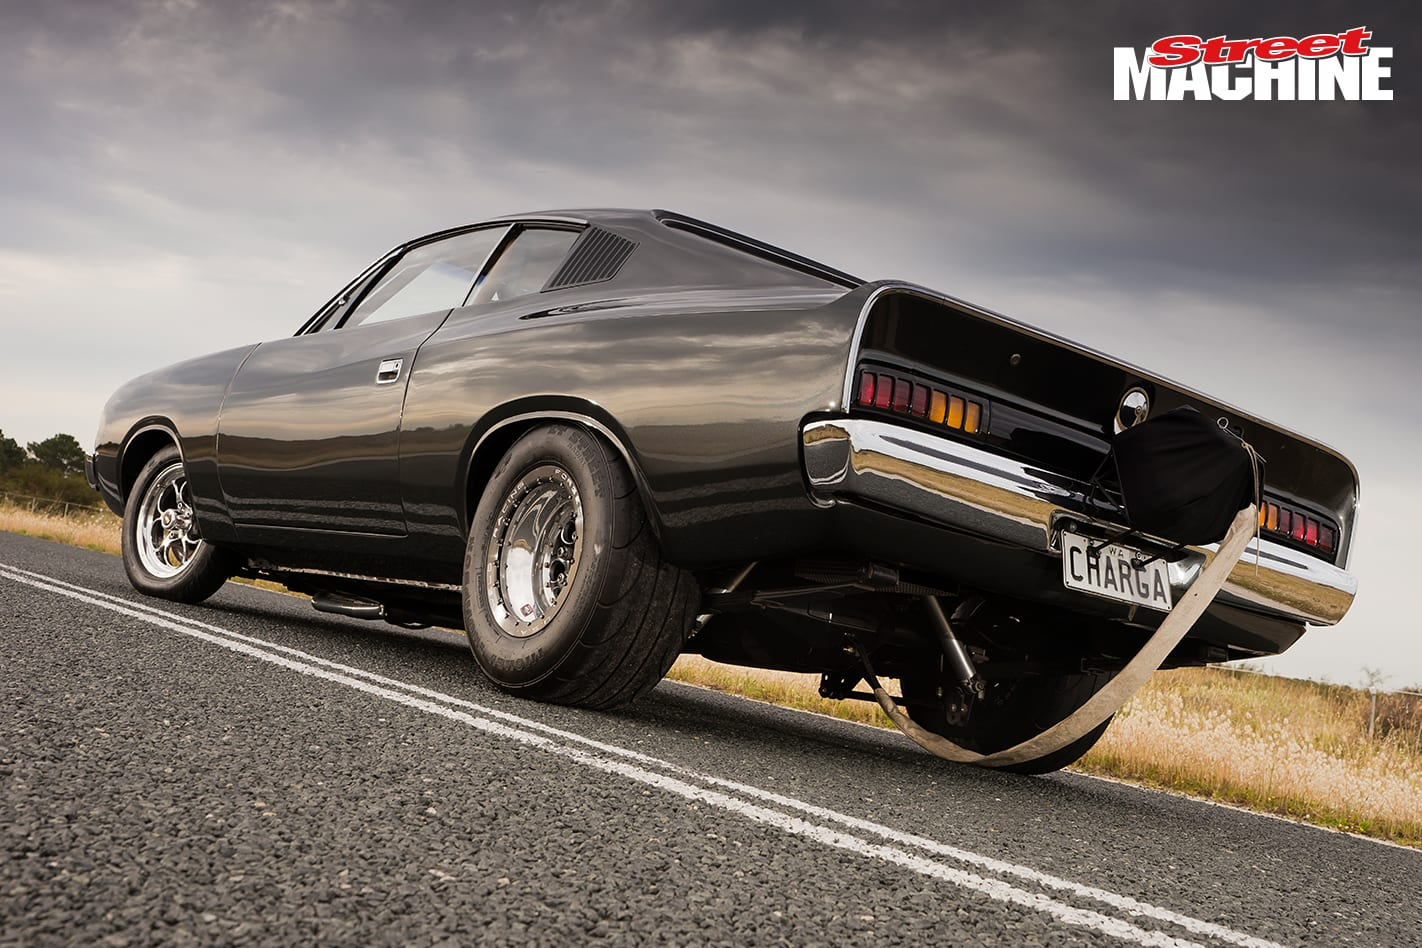 VH Valiant Charger 7 Nw